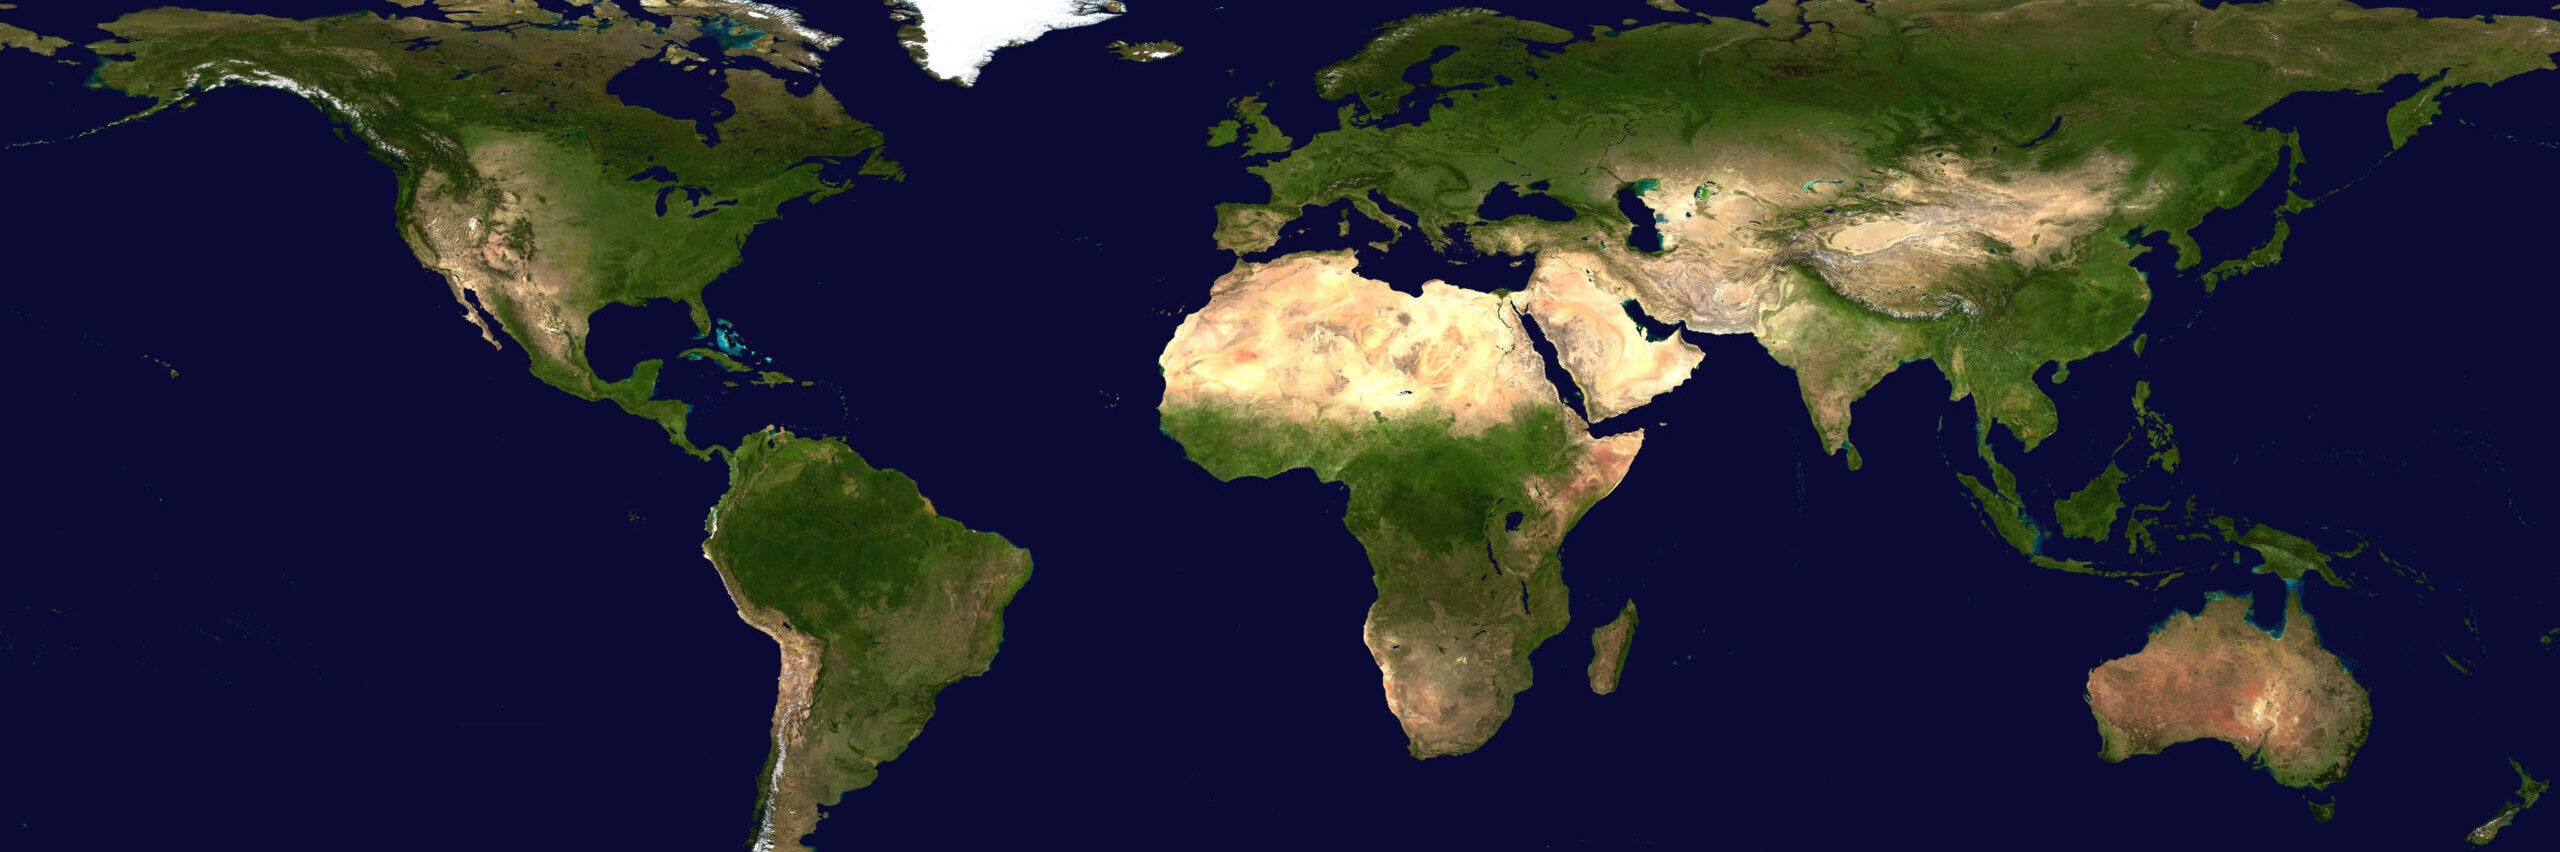 Complete Earth view from space. Digitally combined from a collection of satellite-based observations. From about 700km.